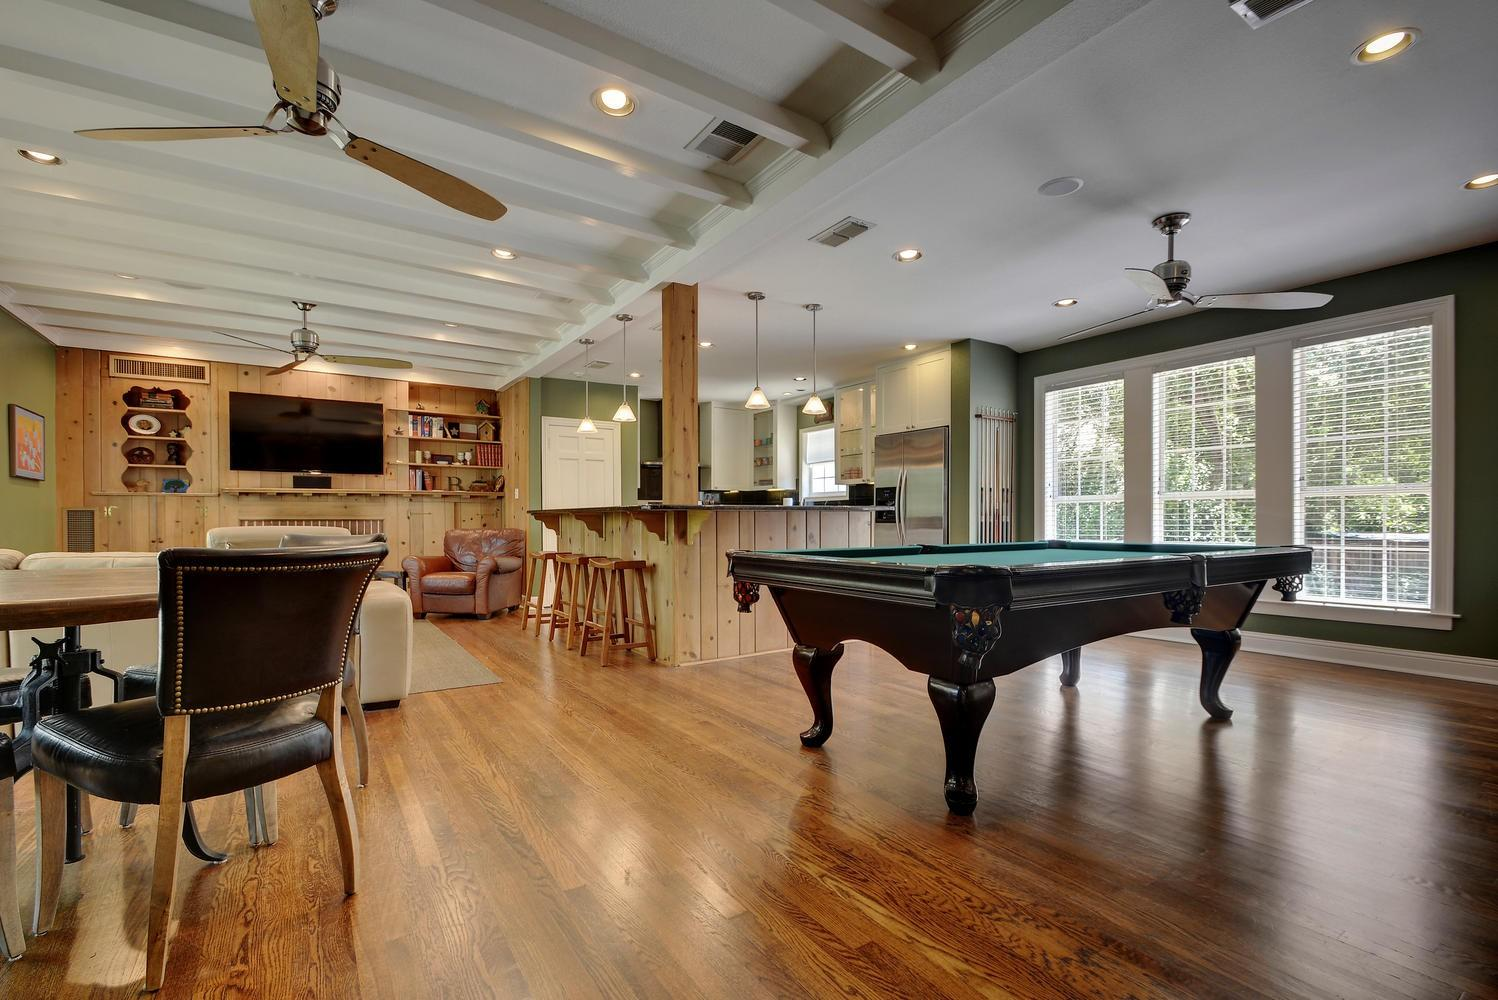 Property Image 2 - Historic LBJ Presidential Estate Designed for Entertaining